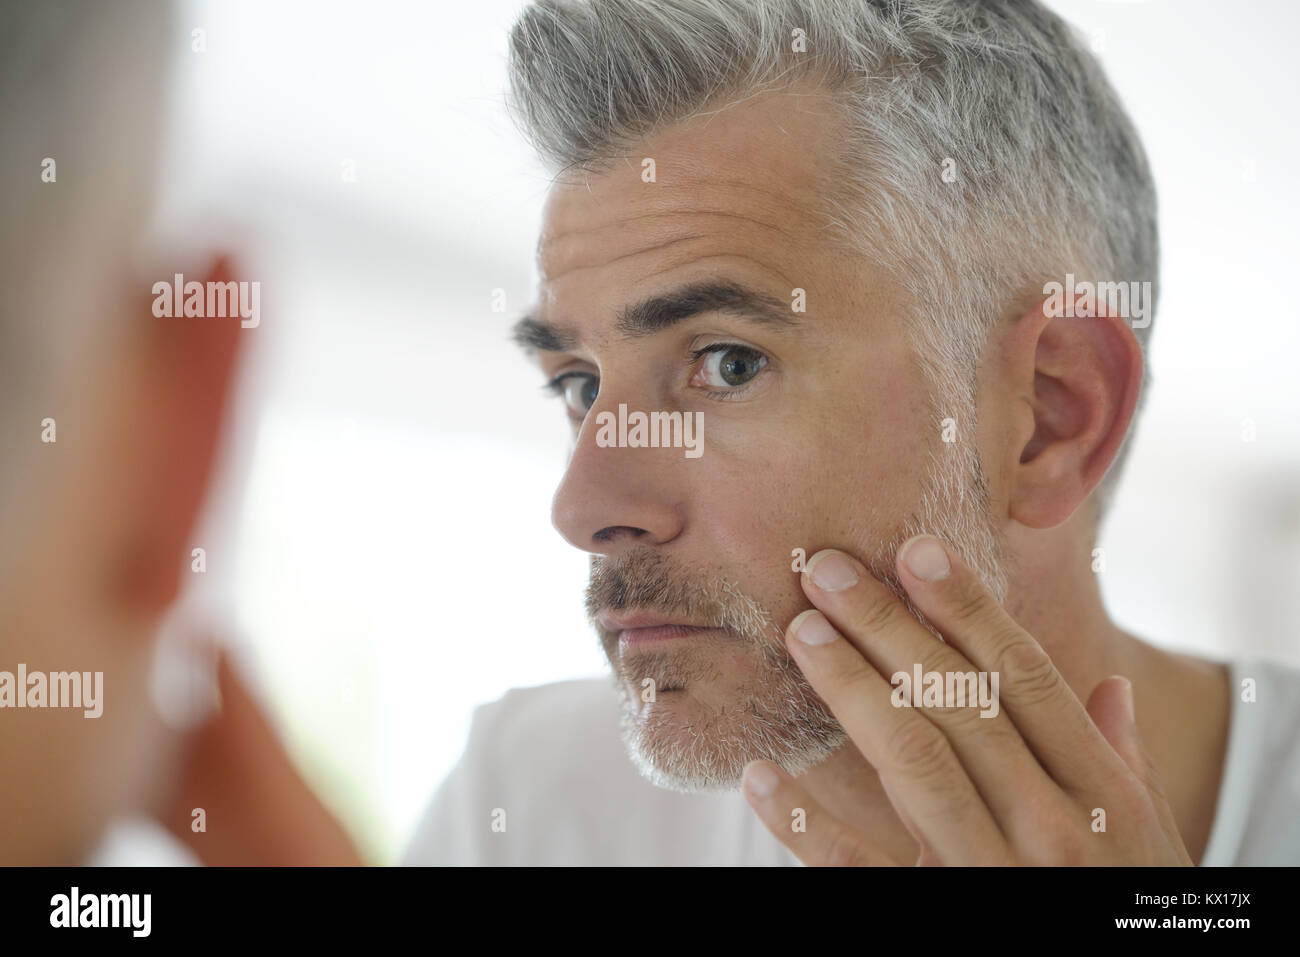 Middle-aged man applying cosmetic on his face, mirror view - Stock Image